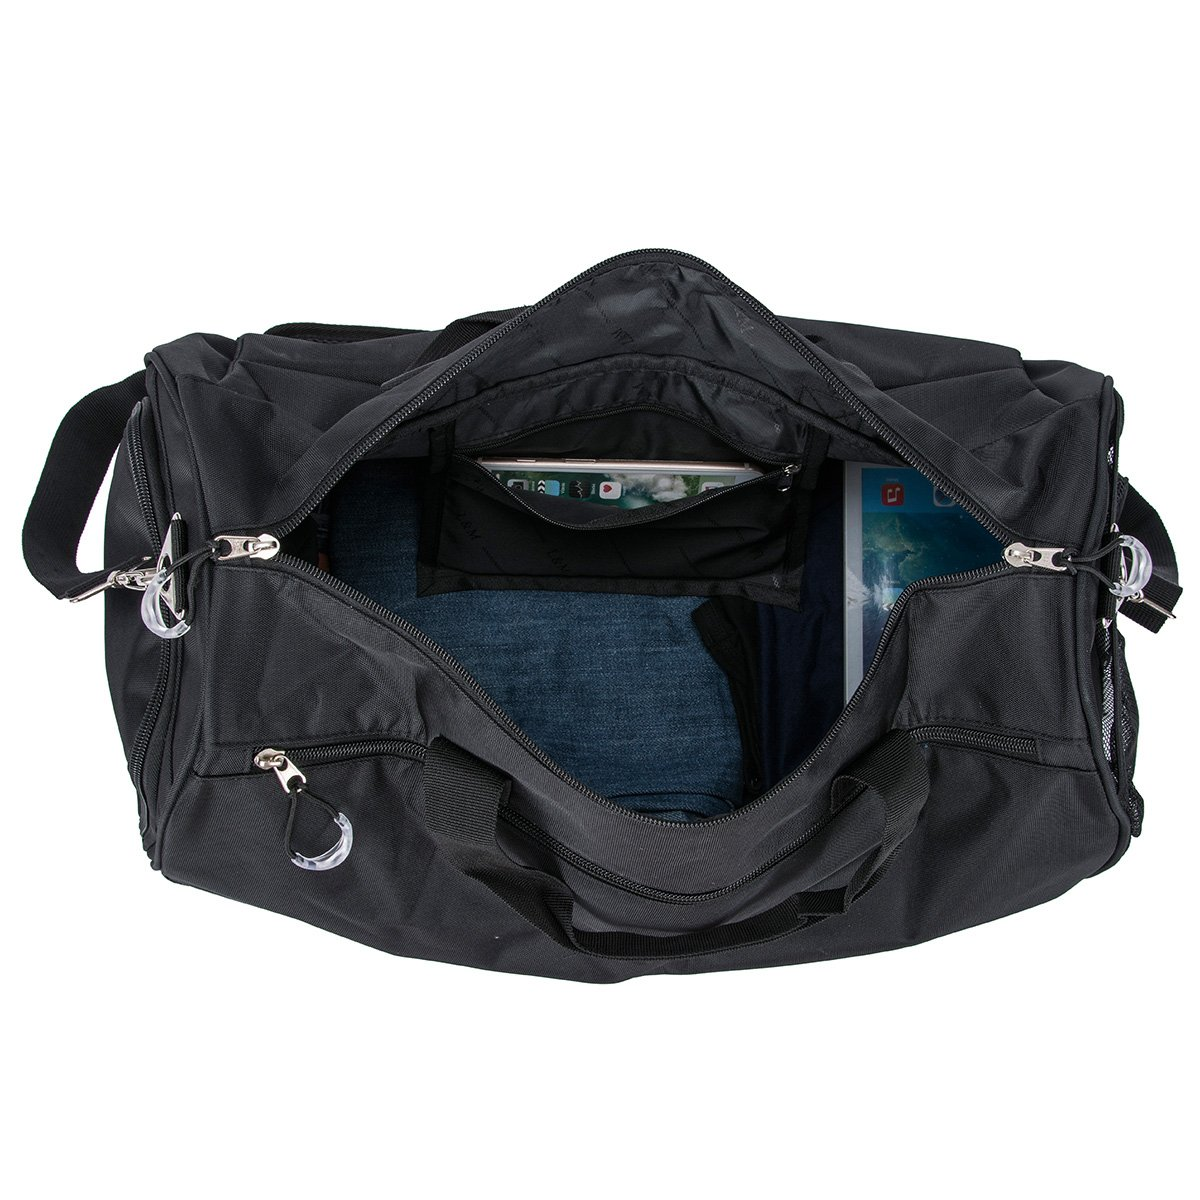 3915db0e6a0d Amazon.com  Kuston Sports Gym Bag with Shoes Compartment Travel Duffel Bag  for Men and Women  Sports   Outdoors